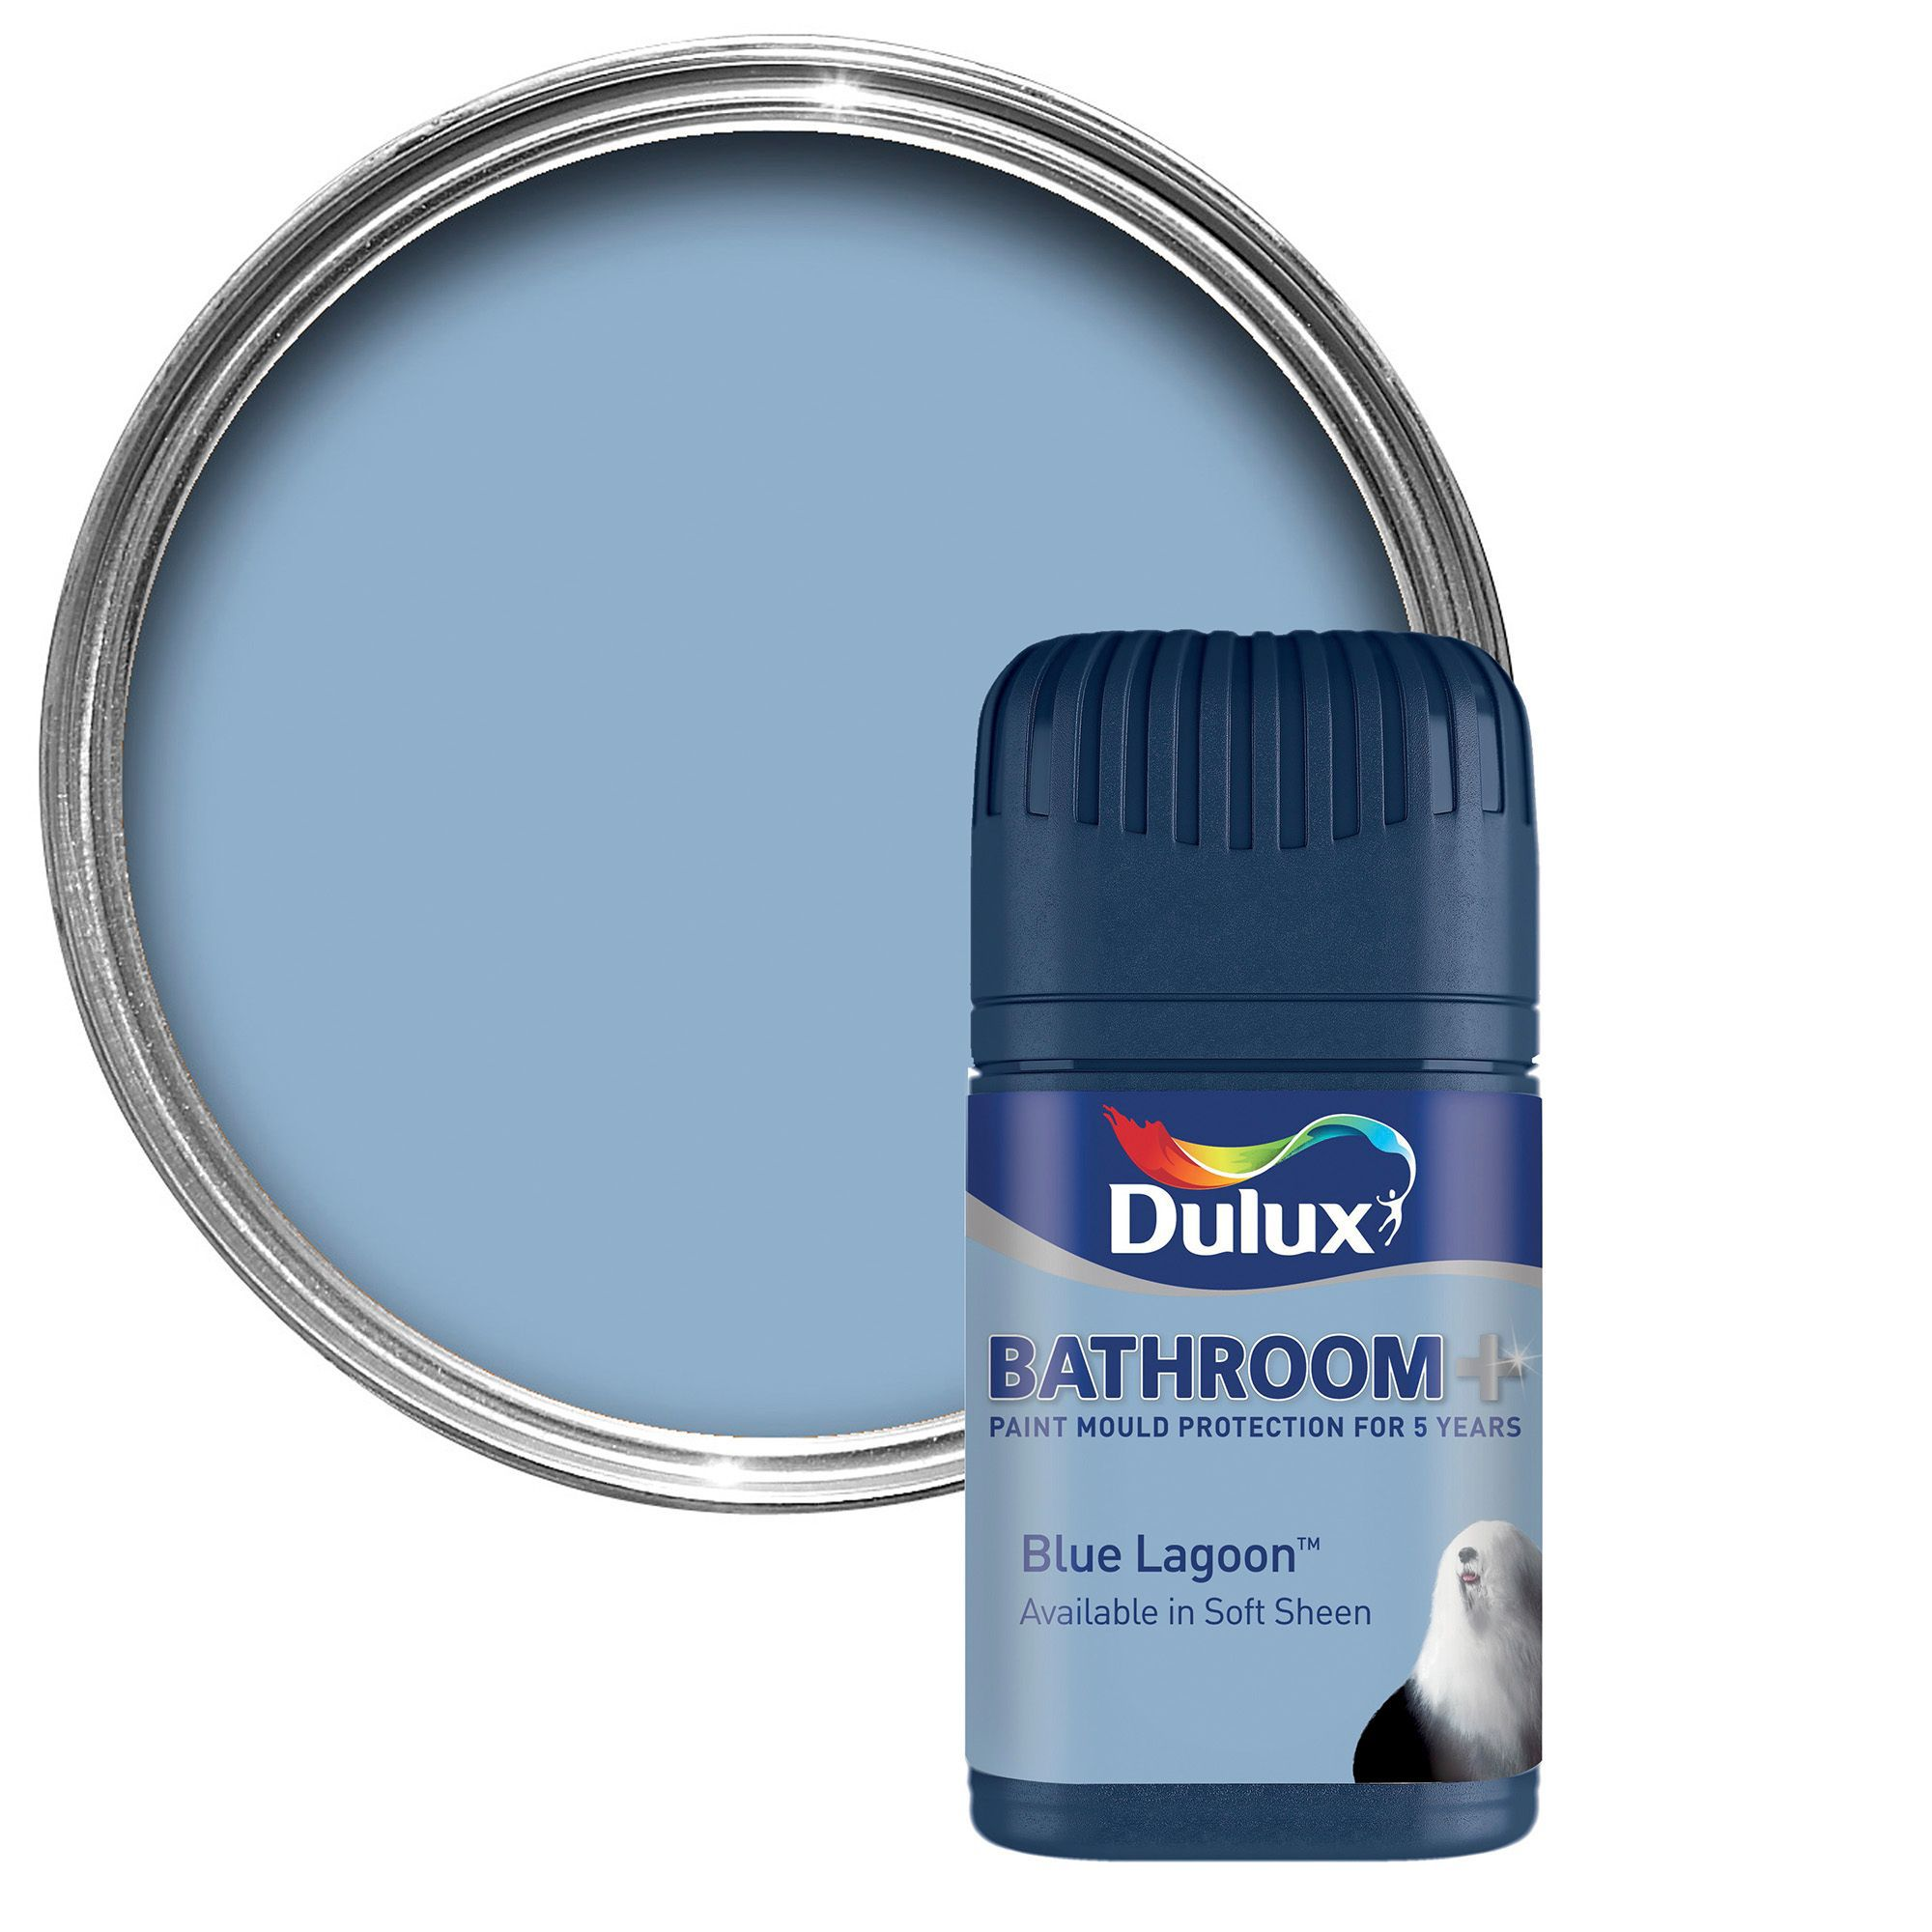 Dulux Blue Lagoon Bathroom Paint